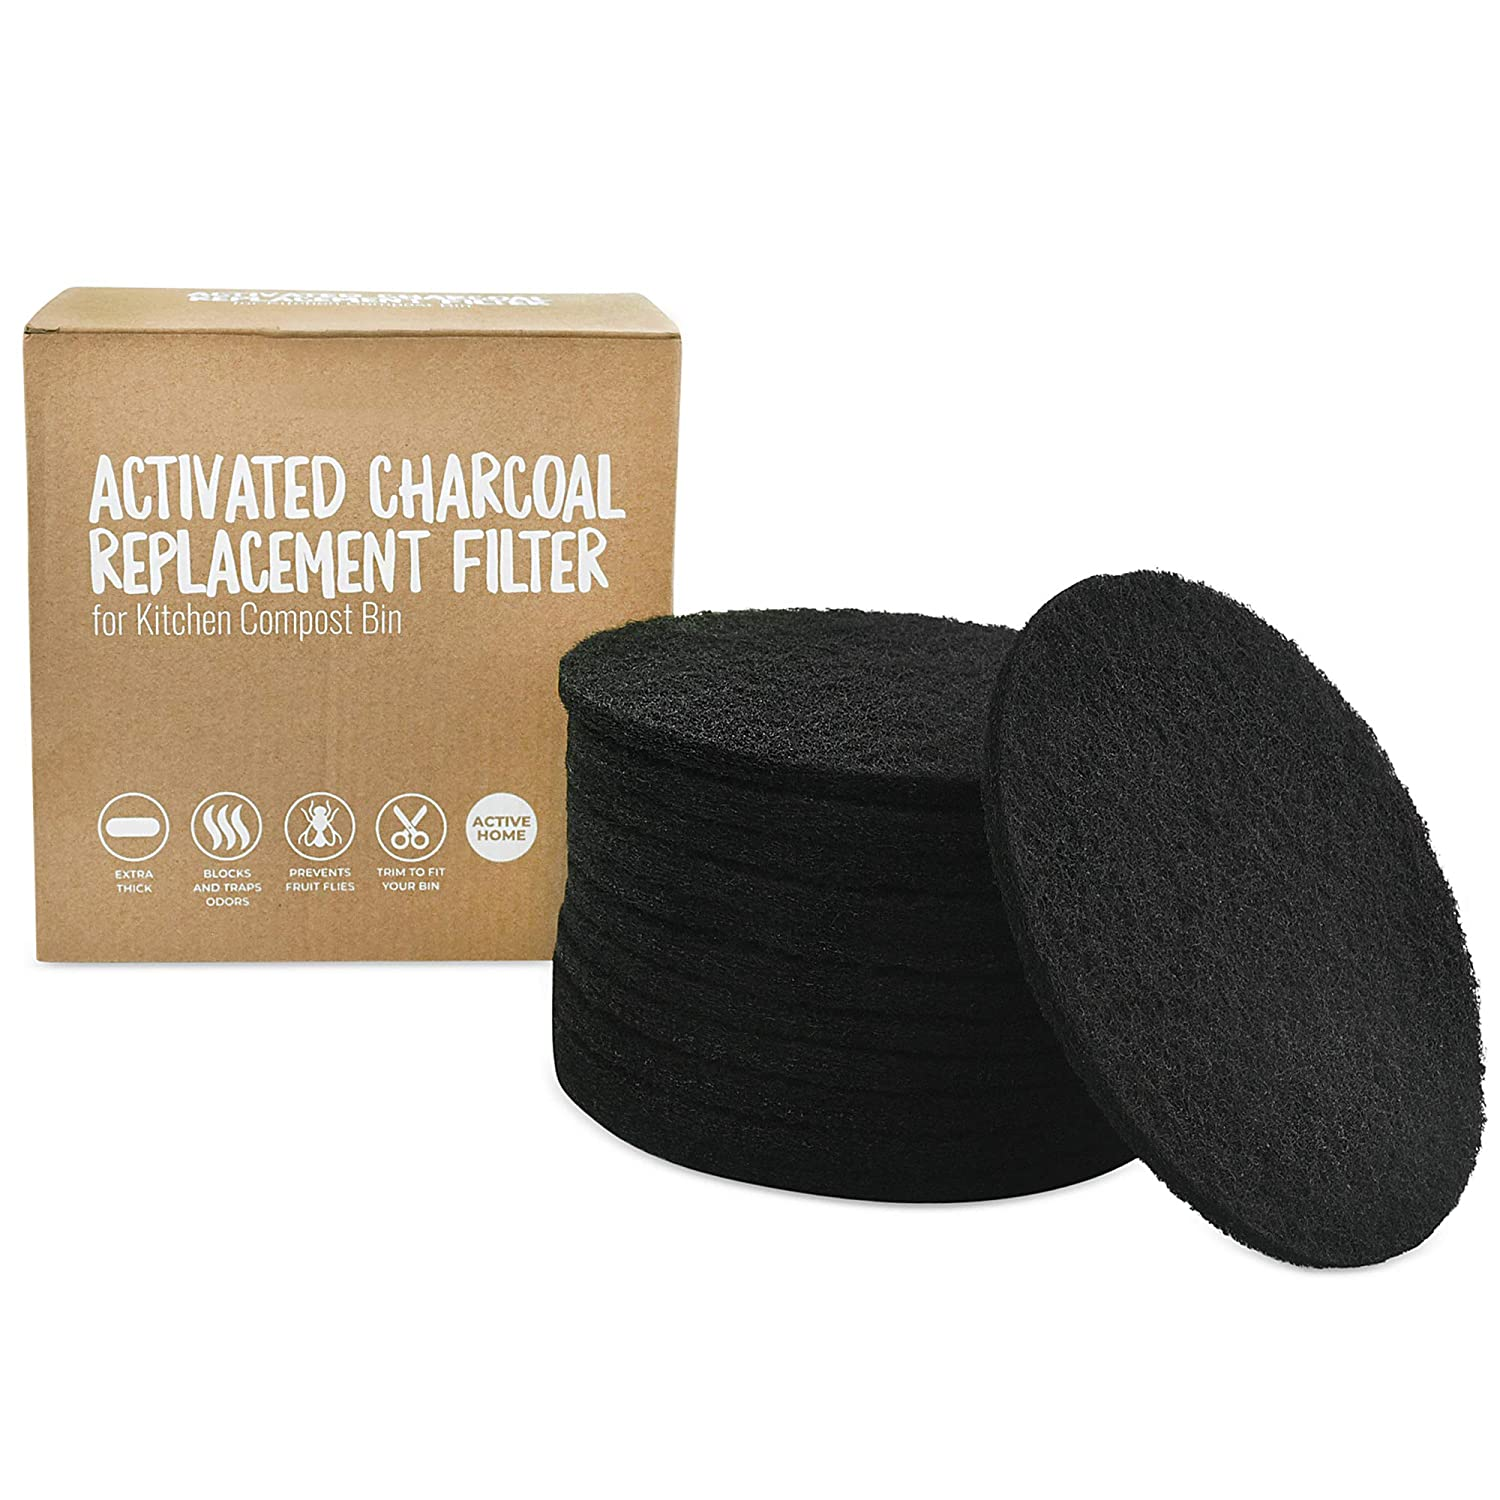 12 Pack Activated Charcoal Replacement Filters for Kitchen Compost Bin